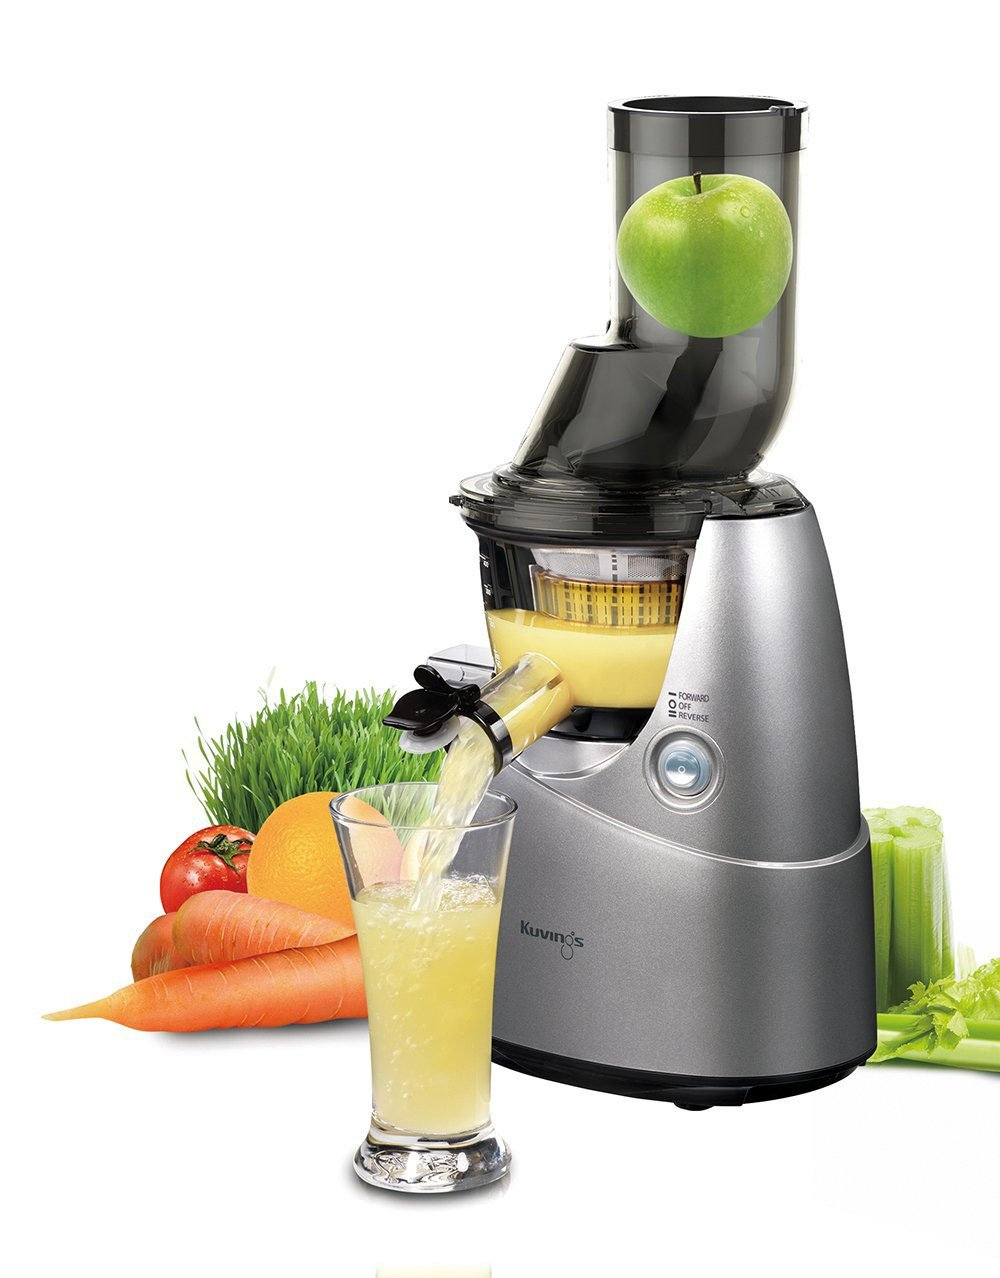 Kuvings cold-press juicer